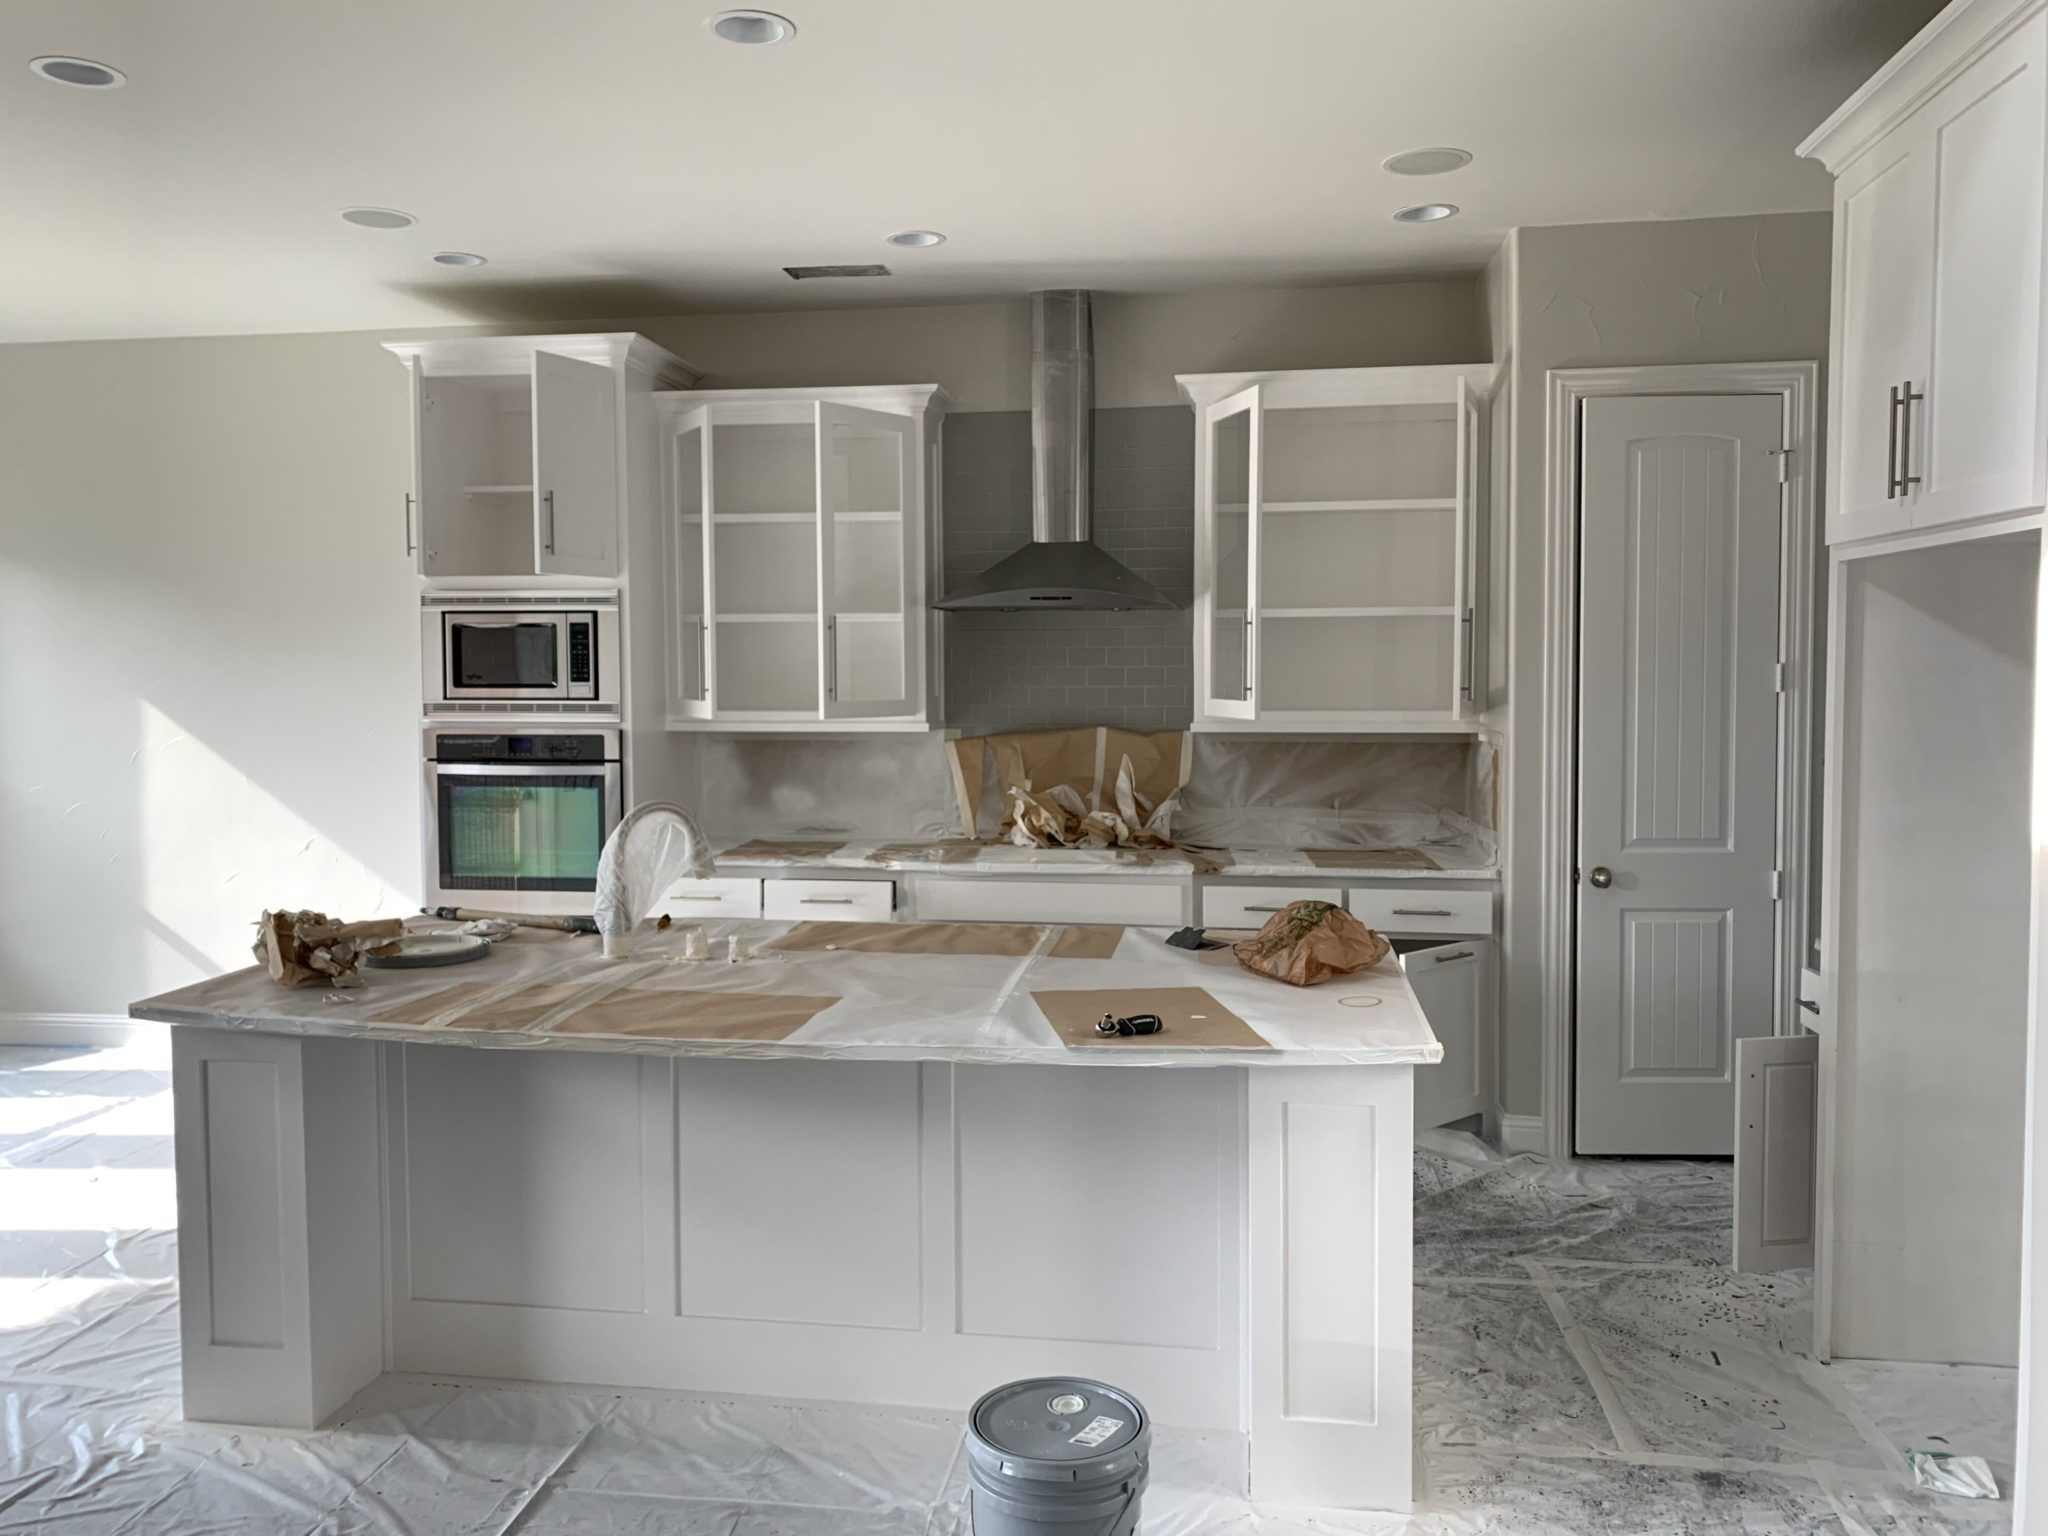 Kitchen With White Painted Cabinets Dfw Painting Refinishing Cabinets Paint Cabinets White Refinish Kitchen Cabinets